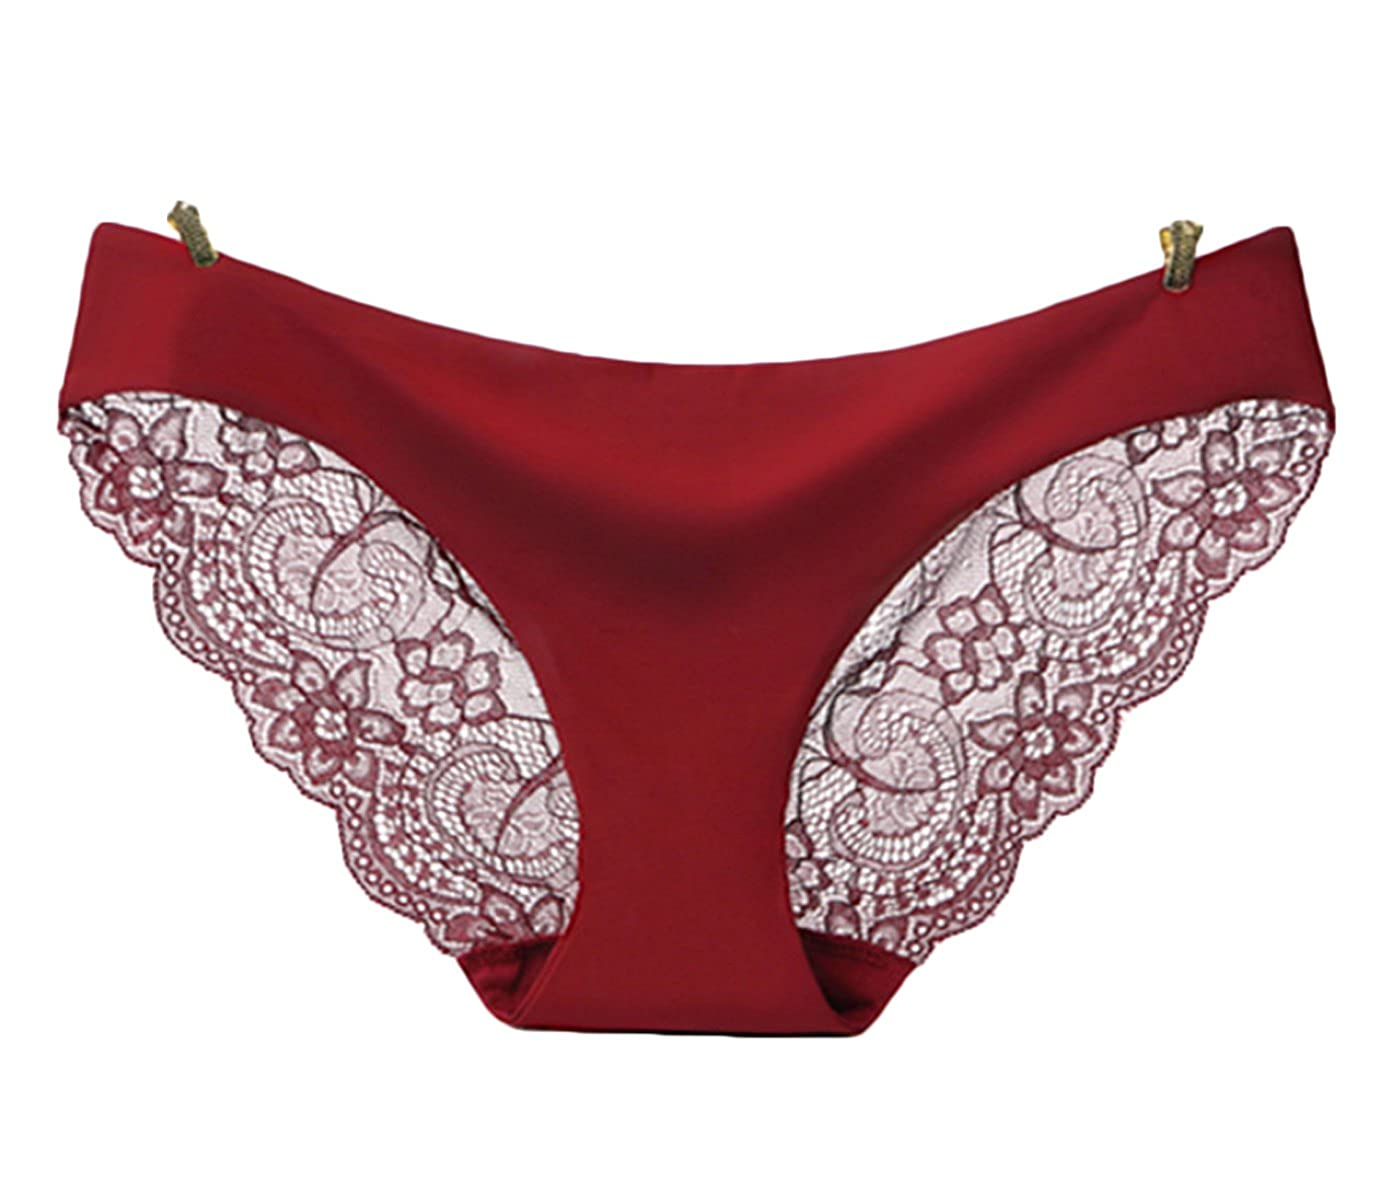 68696bdc378 Lace Sexy Ladies Panties Pure Color Ice Silk One-Piece Seamless Underwear  Cotton Low Waist Briefs at Amazon Women s Clothing store